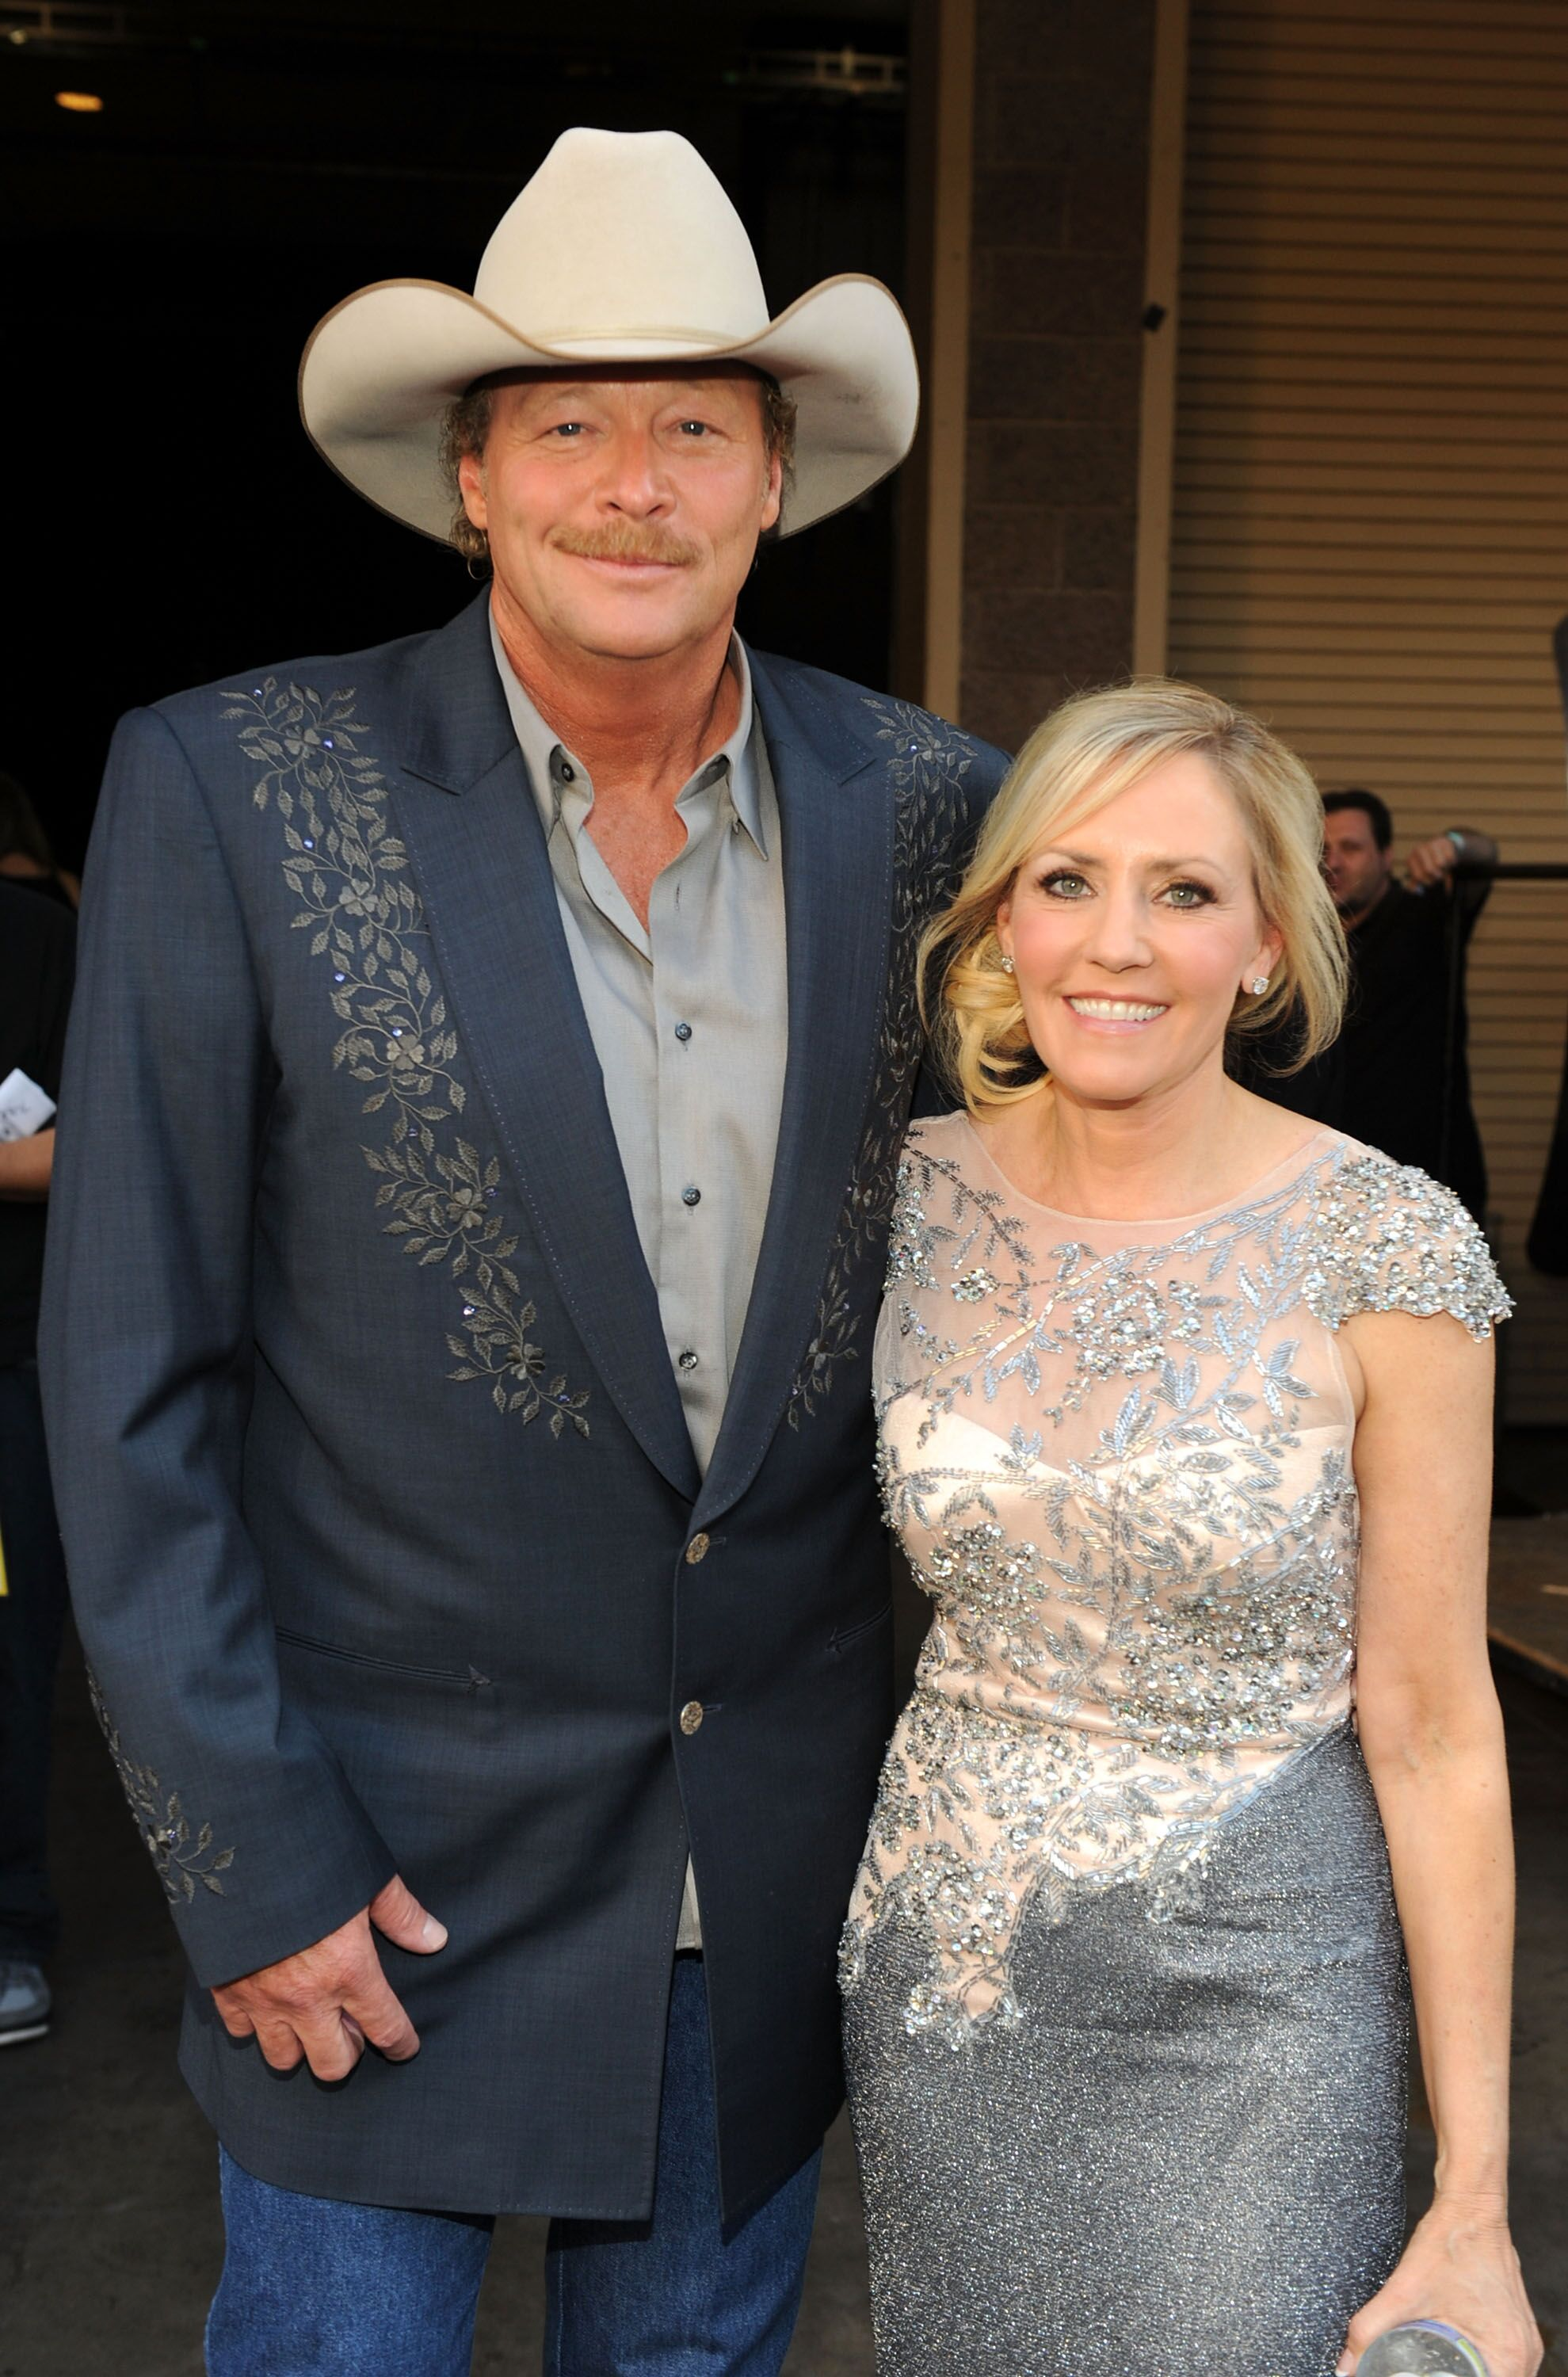 Alan Jackson and Denise Jackson at the 46th Annual Academy Of Country Music Awards held at the MGM Grand Garden Arena on April 3, 2011 in Las Vegas, Nevada. | Source: Getty Images